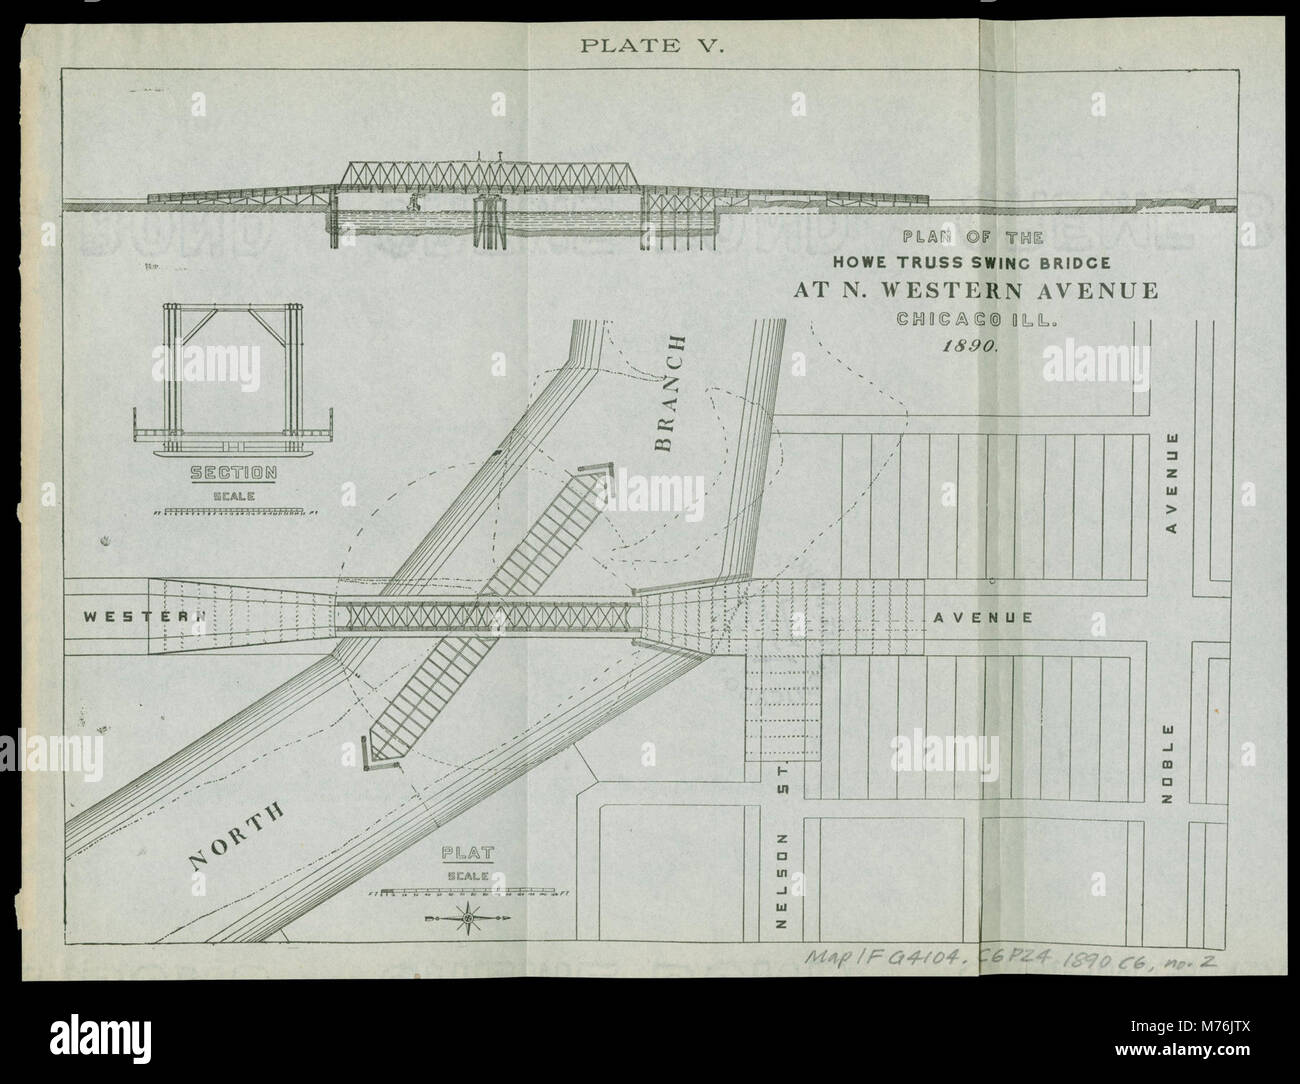 Howe Truss Stock Photos Images Alamy Bridge Diagram Track Pony By Plan Of The Swing At N Western Avenue Chicago Ill